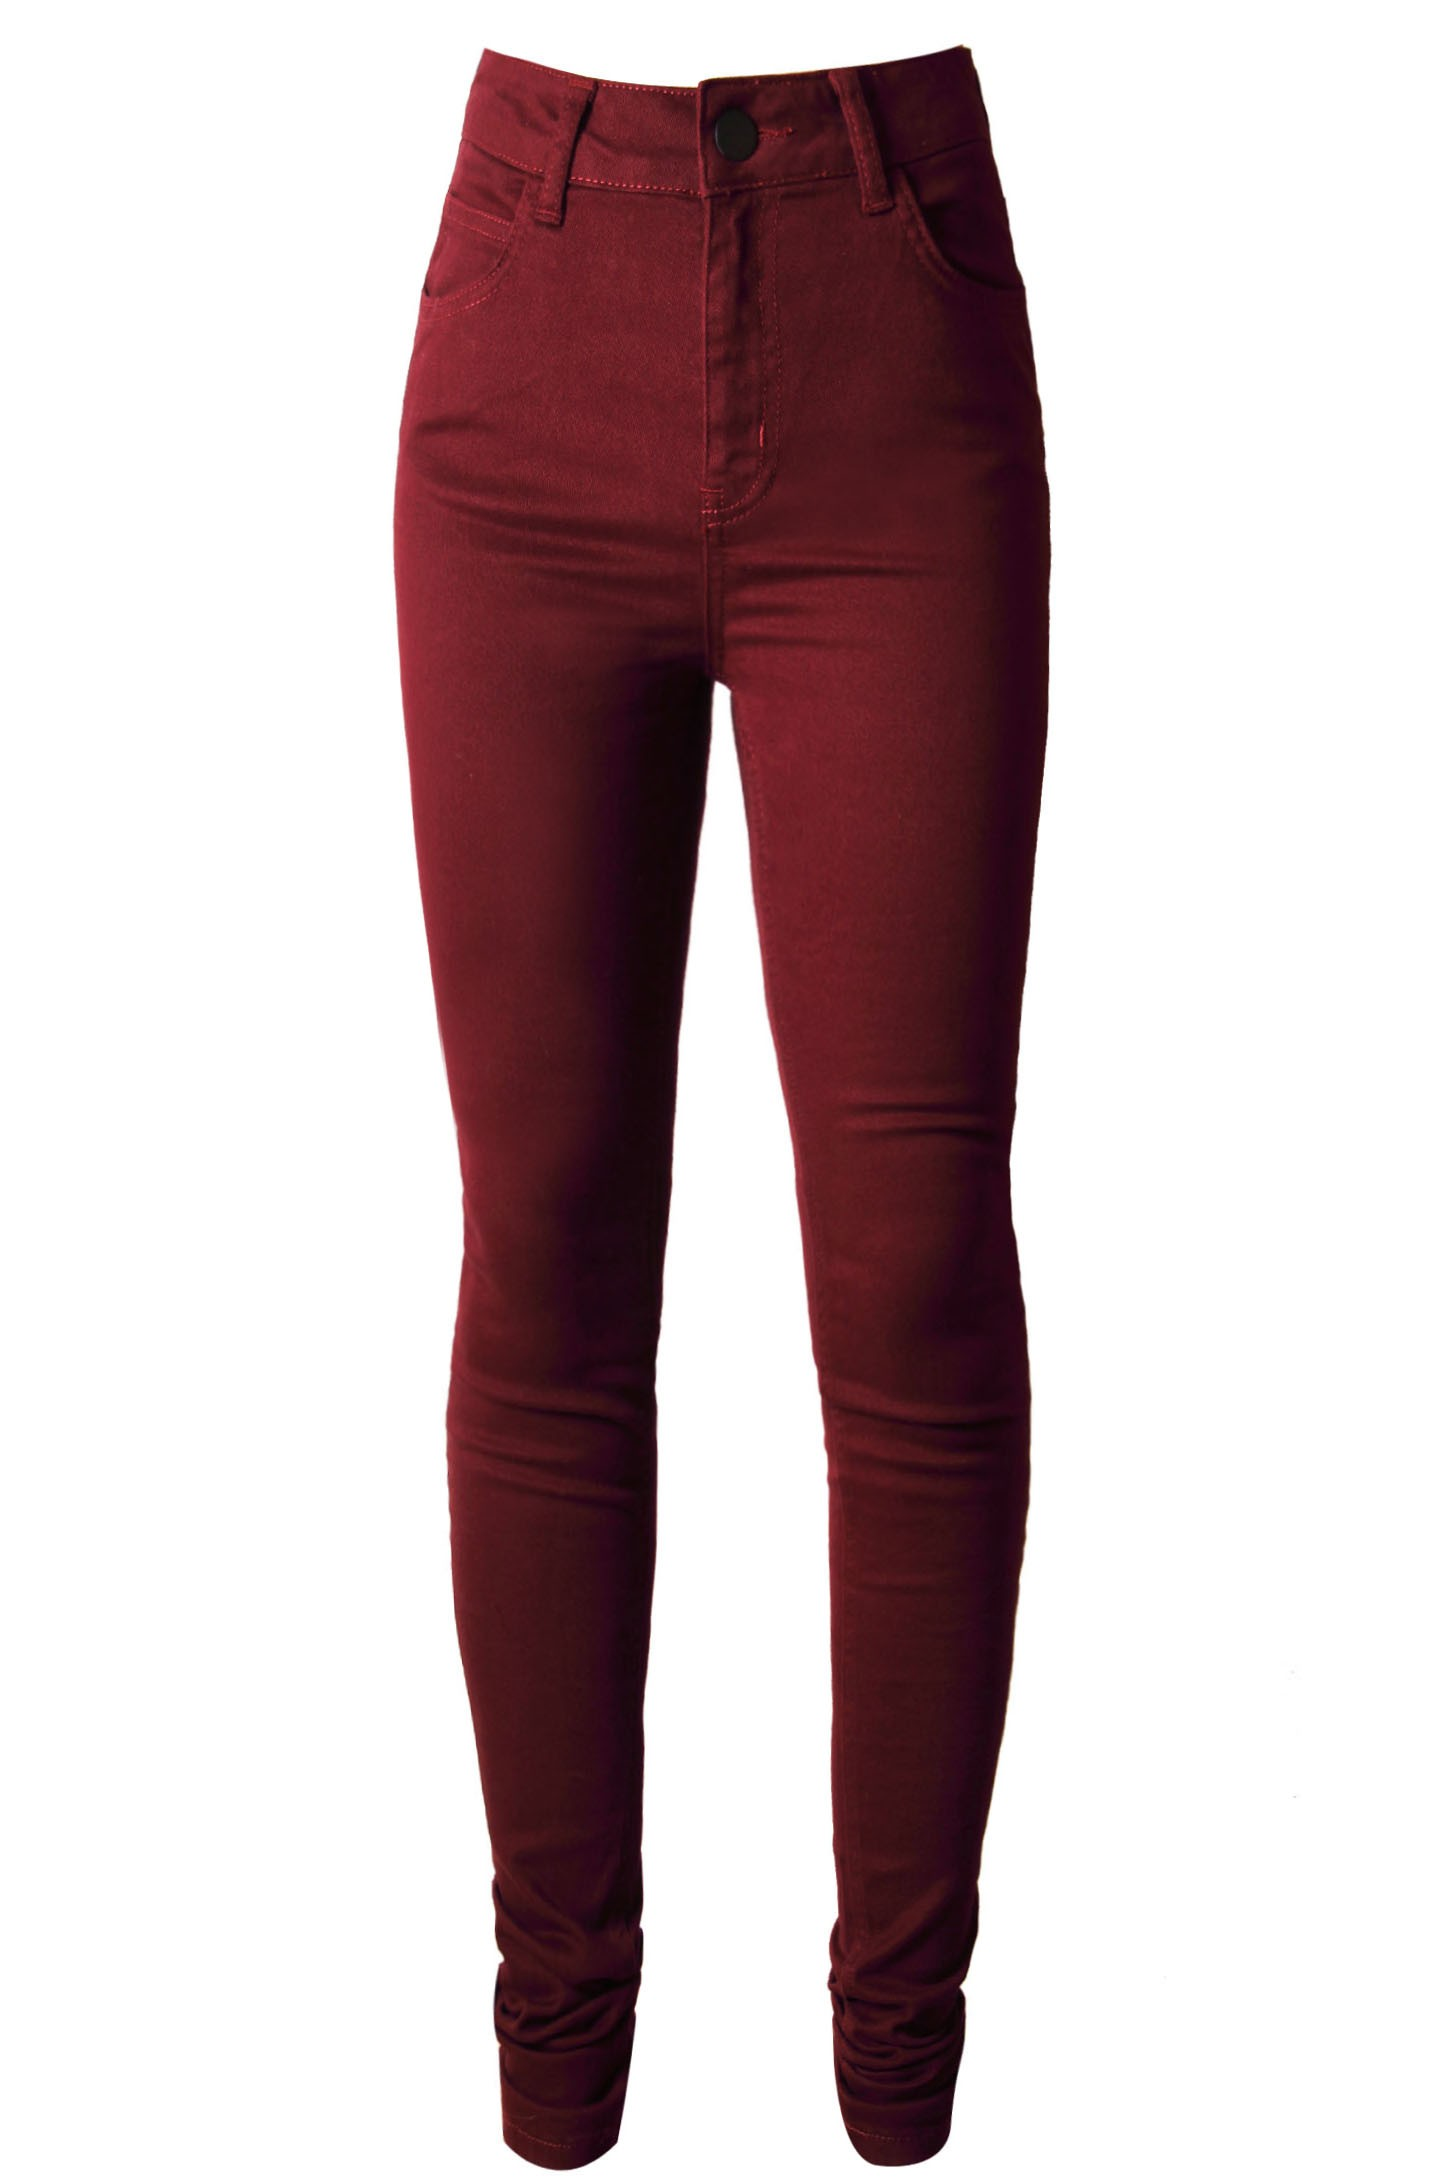 Simple  AmpHere Burgundy Reagan Tapered Pants Cheap Sale For Women Zero Profit